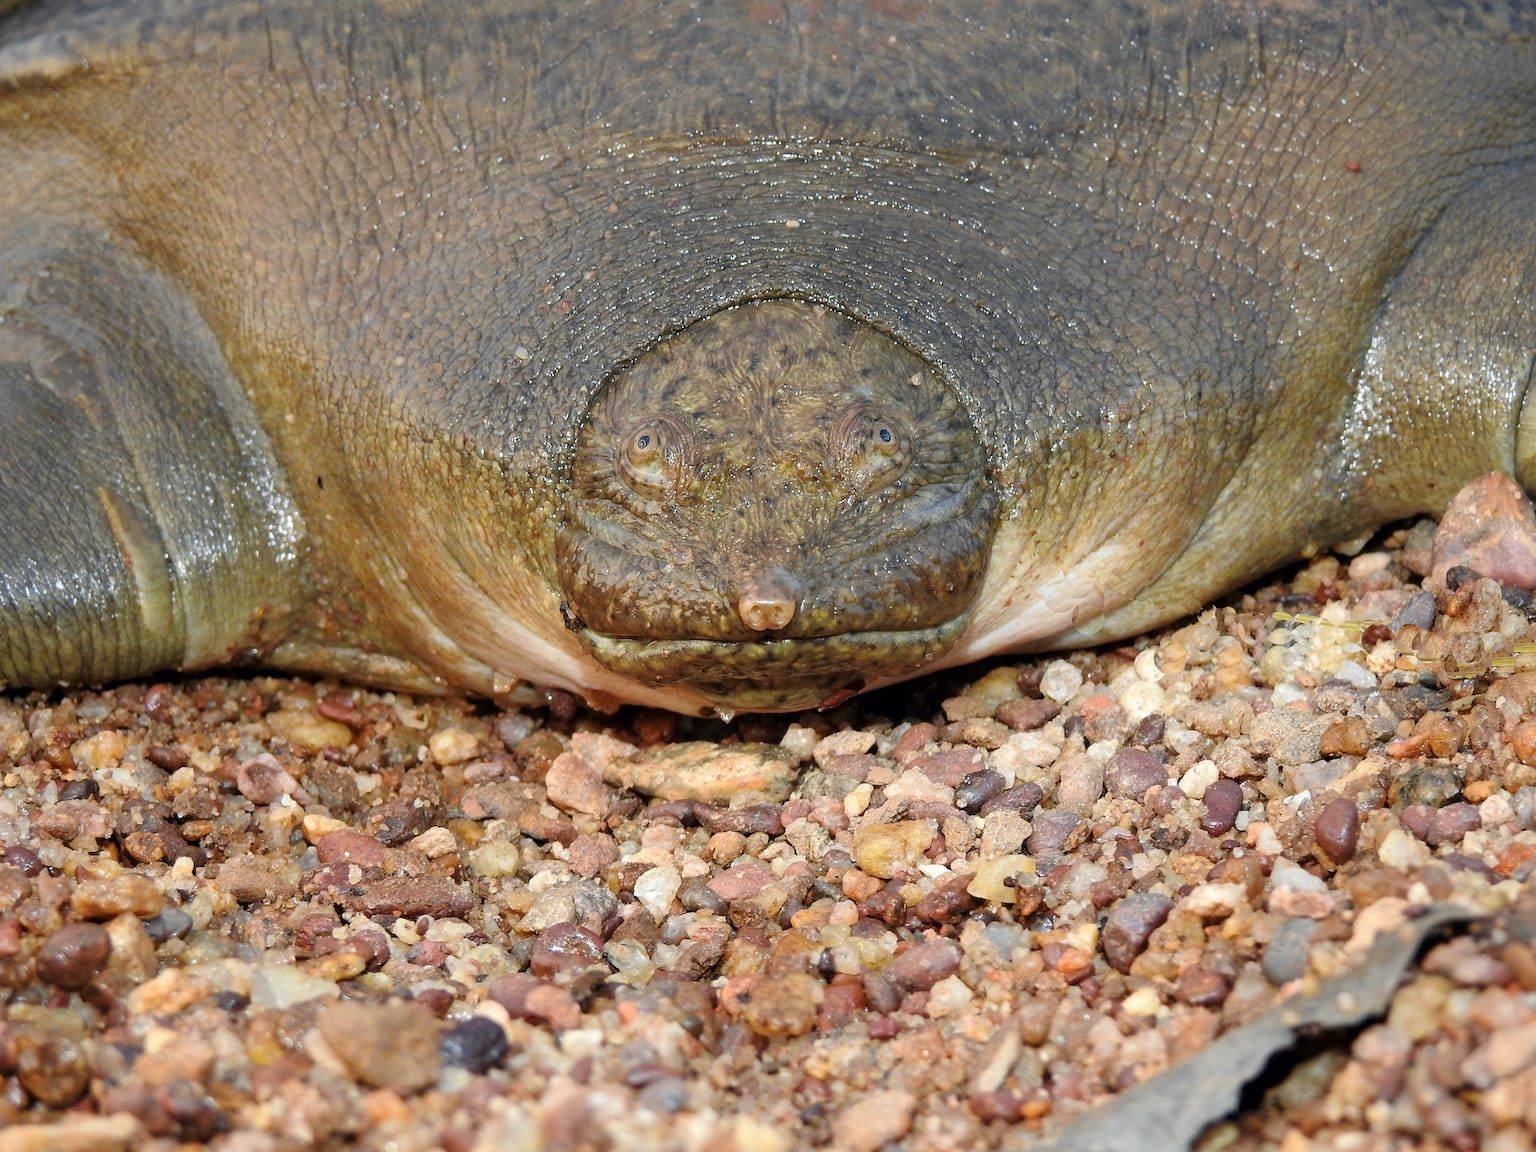 "Due to its unique frog-like facial features, the Cantor's giant softshell turtle is also referred to as ""frog-faced softshell turtle"". Photo: Ayushi Jain  Cover photo: The Cantor's giant softshell turtle is known to inhabit the deeper areas of riverine systems. Unlike other freshwater turtles, typical basking behaviour is not yet documented for this species. Cover photo: Ayushi Jain"